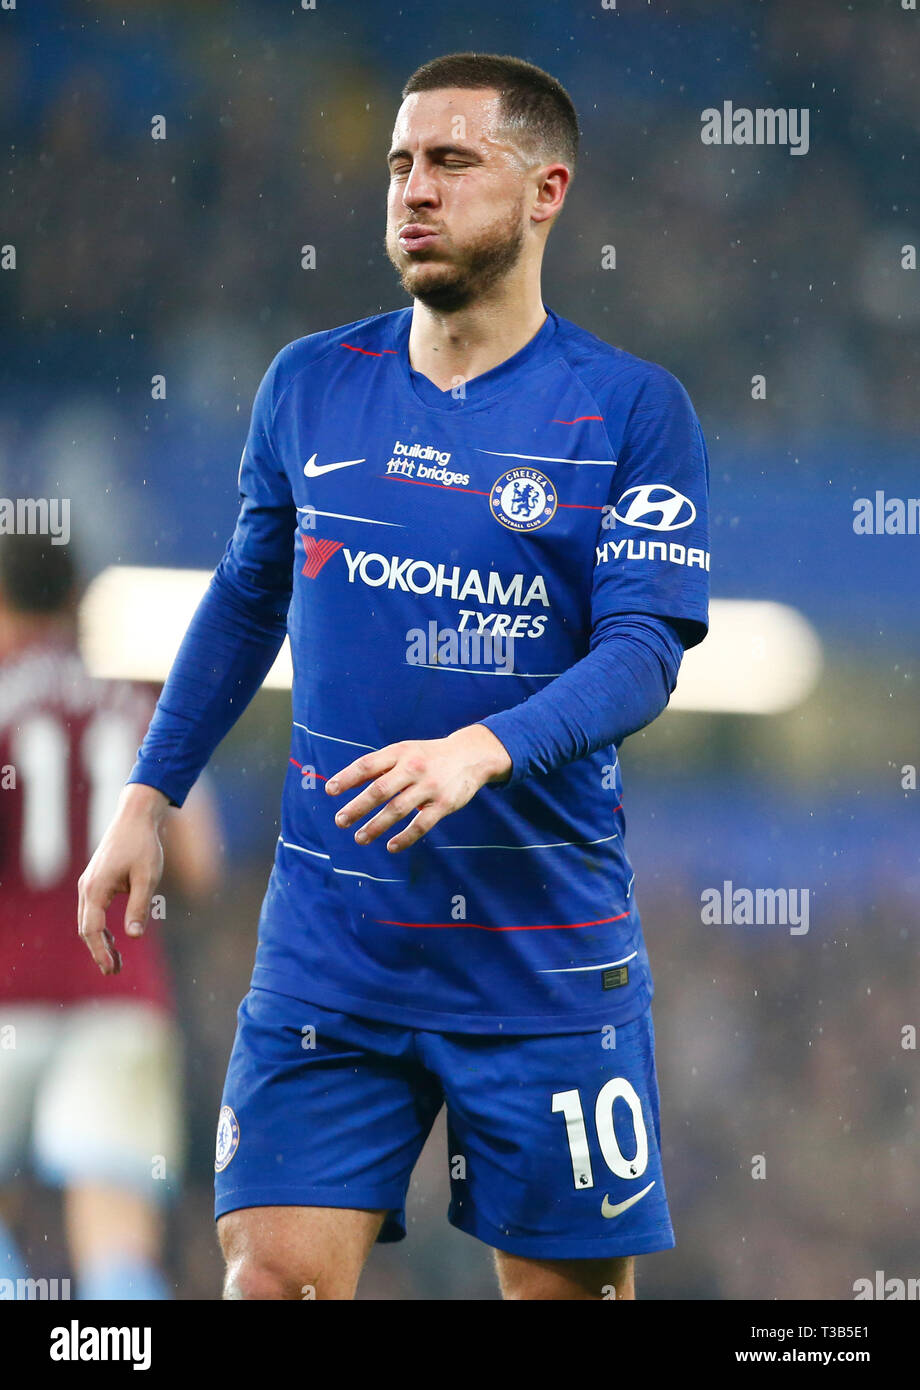 London, UK. 08th Apr, 2019. Chelsea's Eden Hazard during English Premier League between Chelsea and West Ham United at Stamford Bridge stadium, London, England on 08 Apr 2019. Credit: Action Foto Sport/Alamy Live News Stock Photo